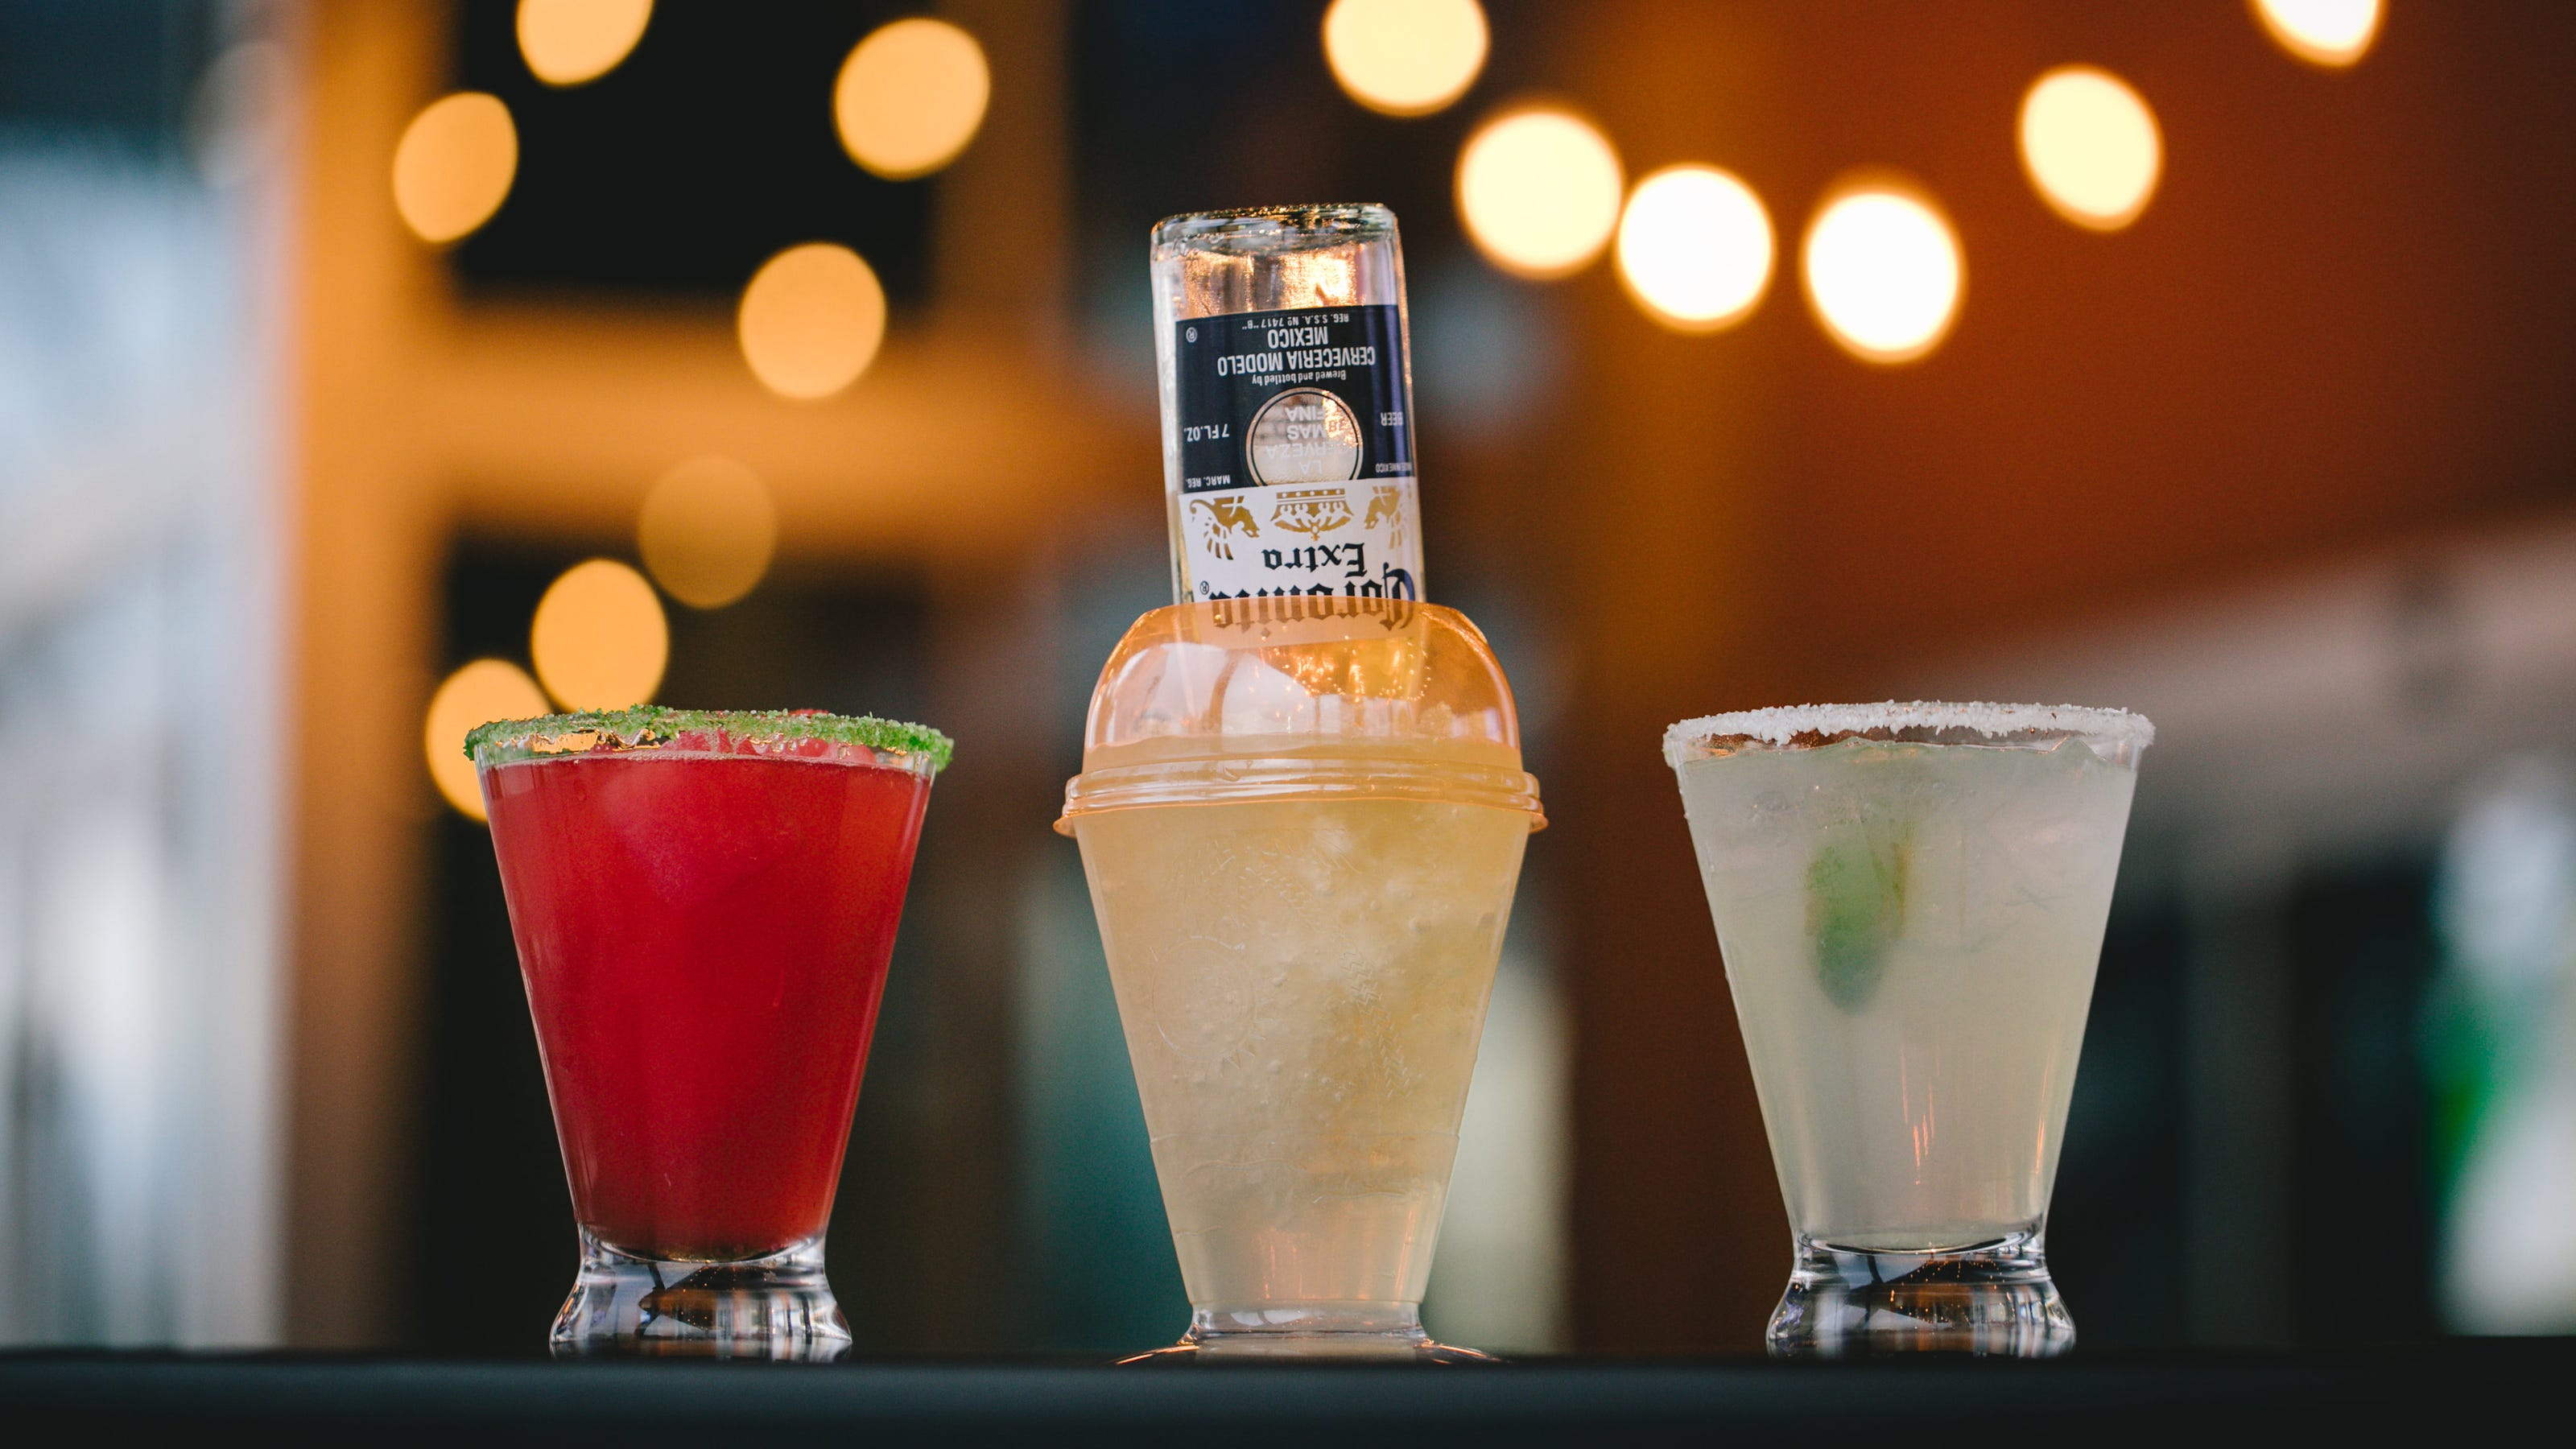 Cool off with a cocktail: Here are 8 wallet-friendly reverse happy hours in metro Phoenix